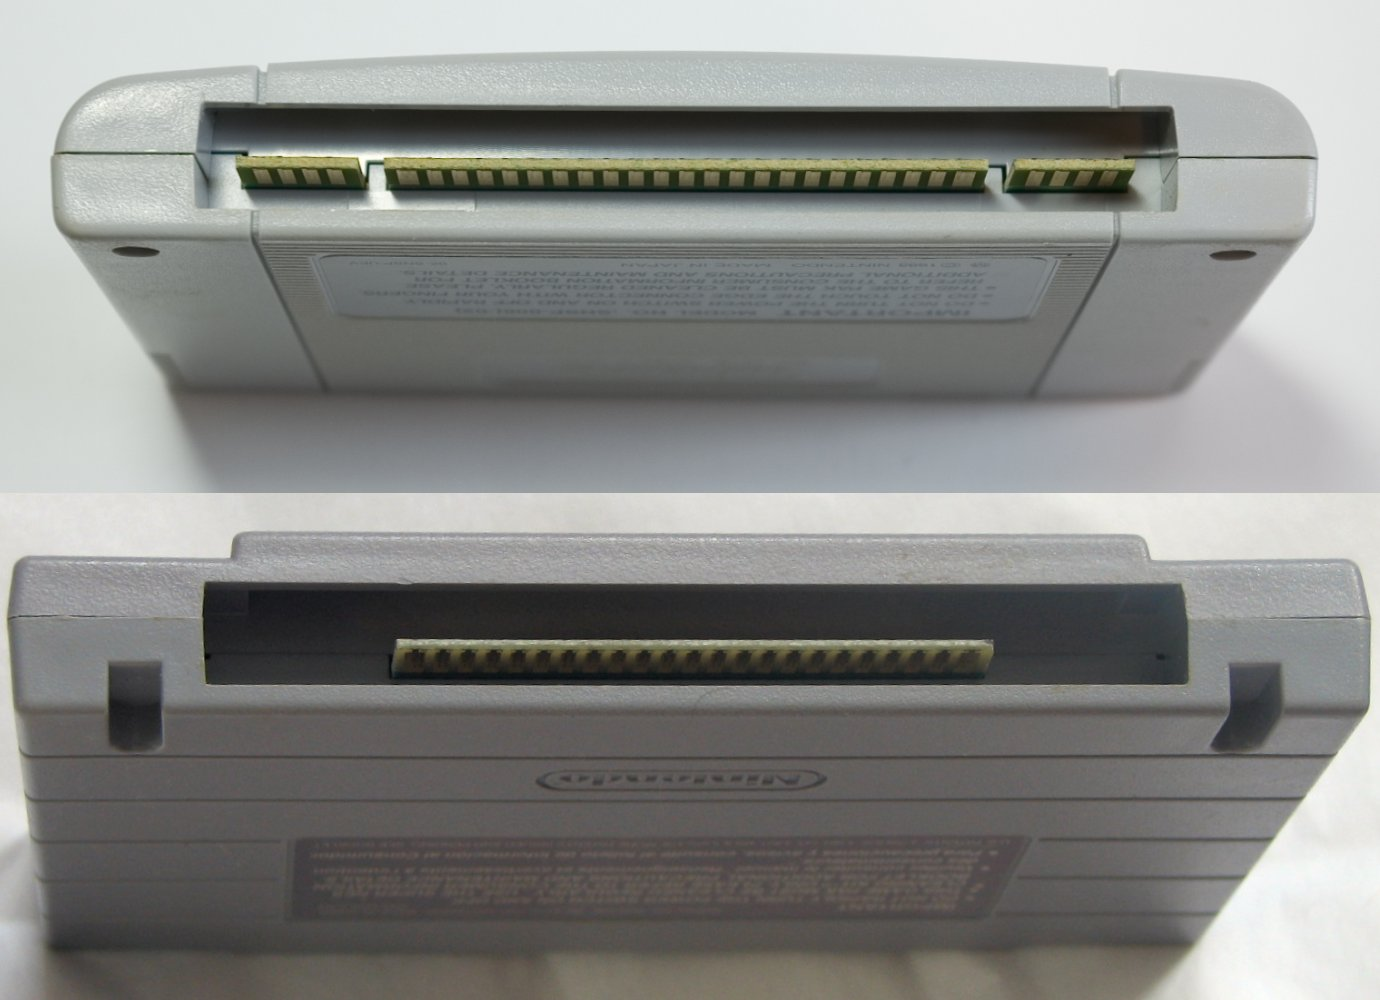 Different Cartridges For Yamaha Dx Iifd